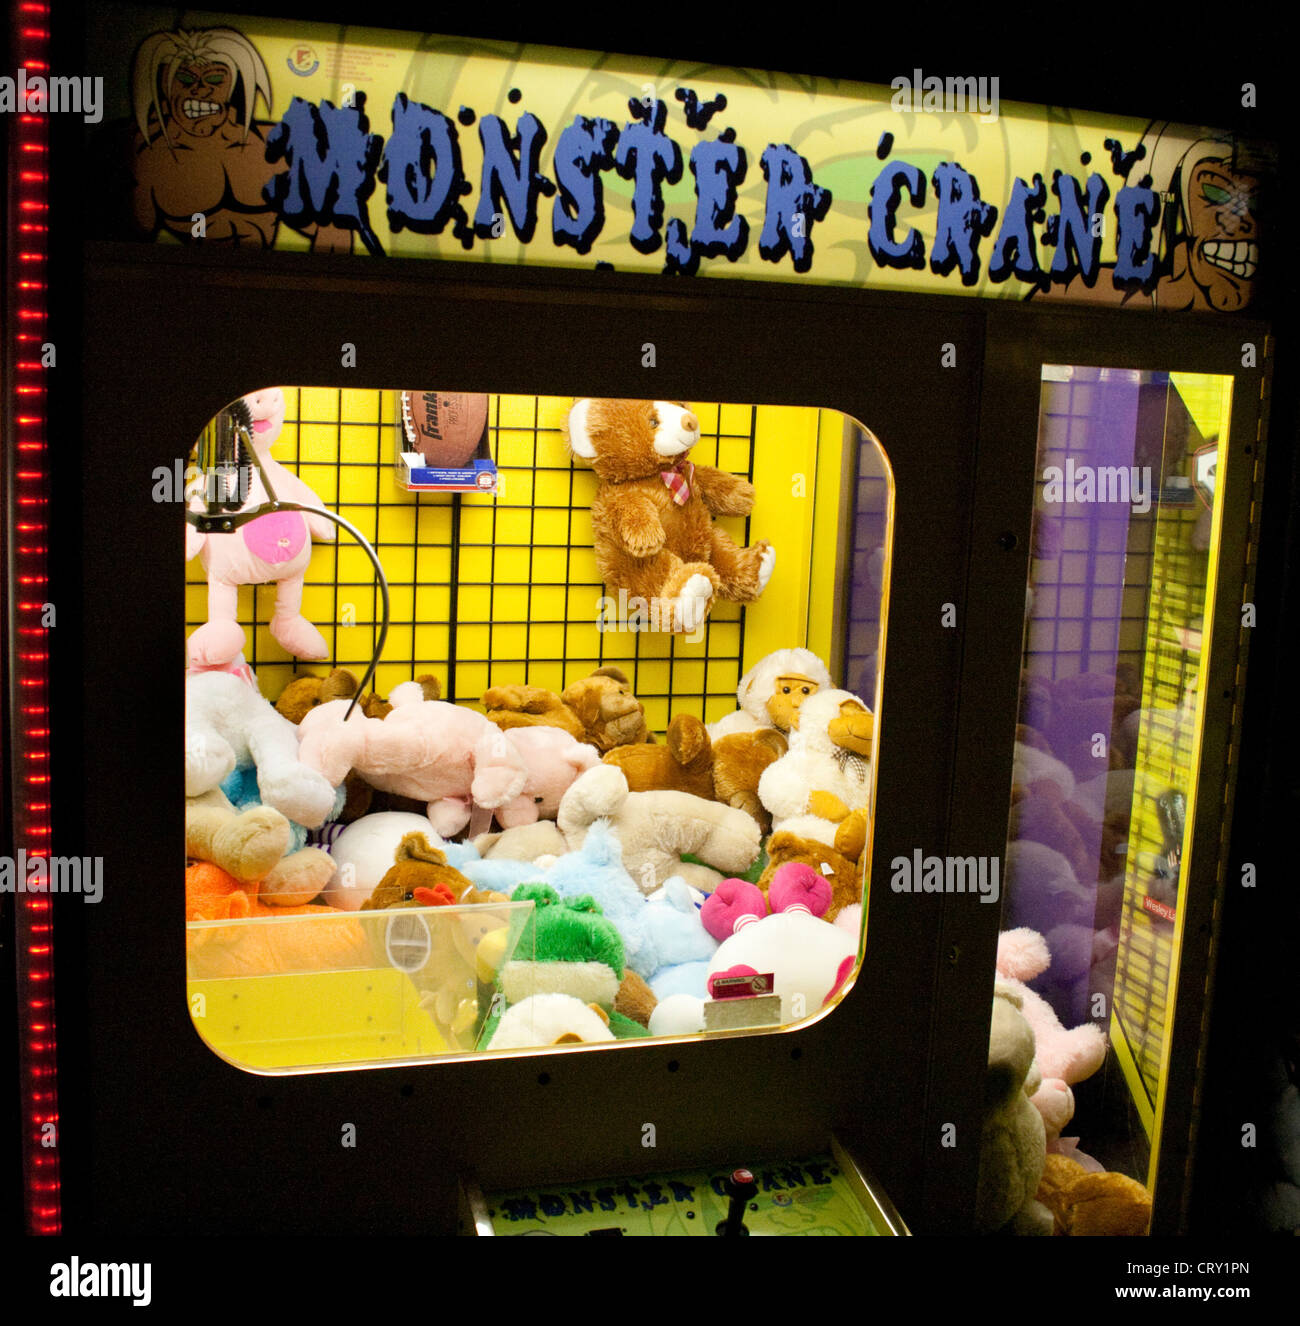 Monster Crane Giant Claw Redemption Machine arcade animal pick up game. Grand Slam Amusement Center Burnsville Minnesota - Stock Image